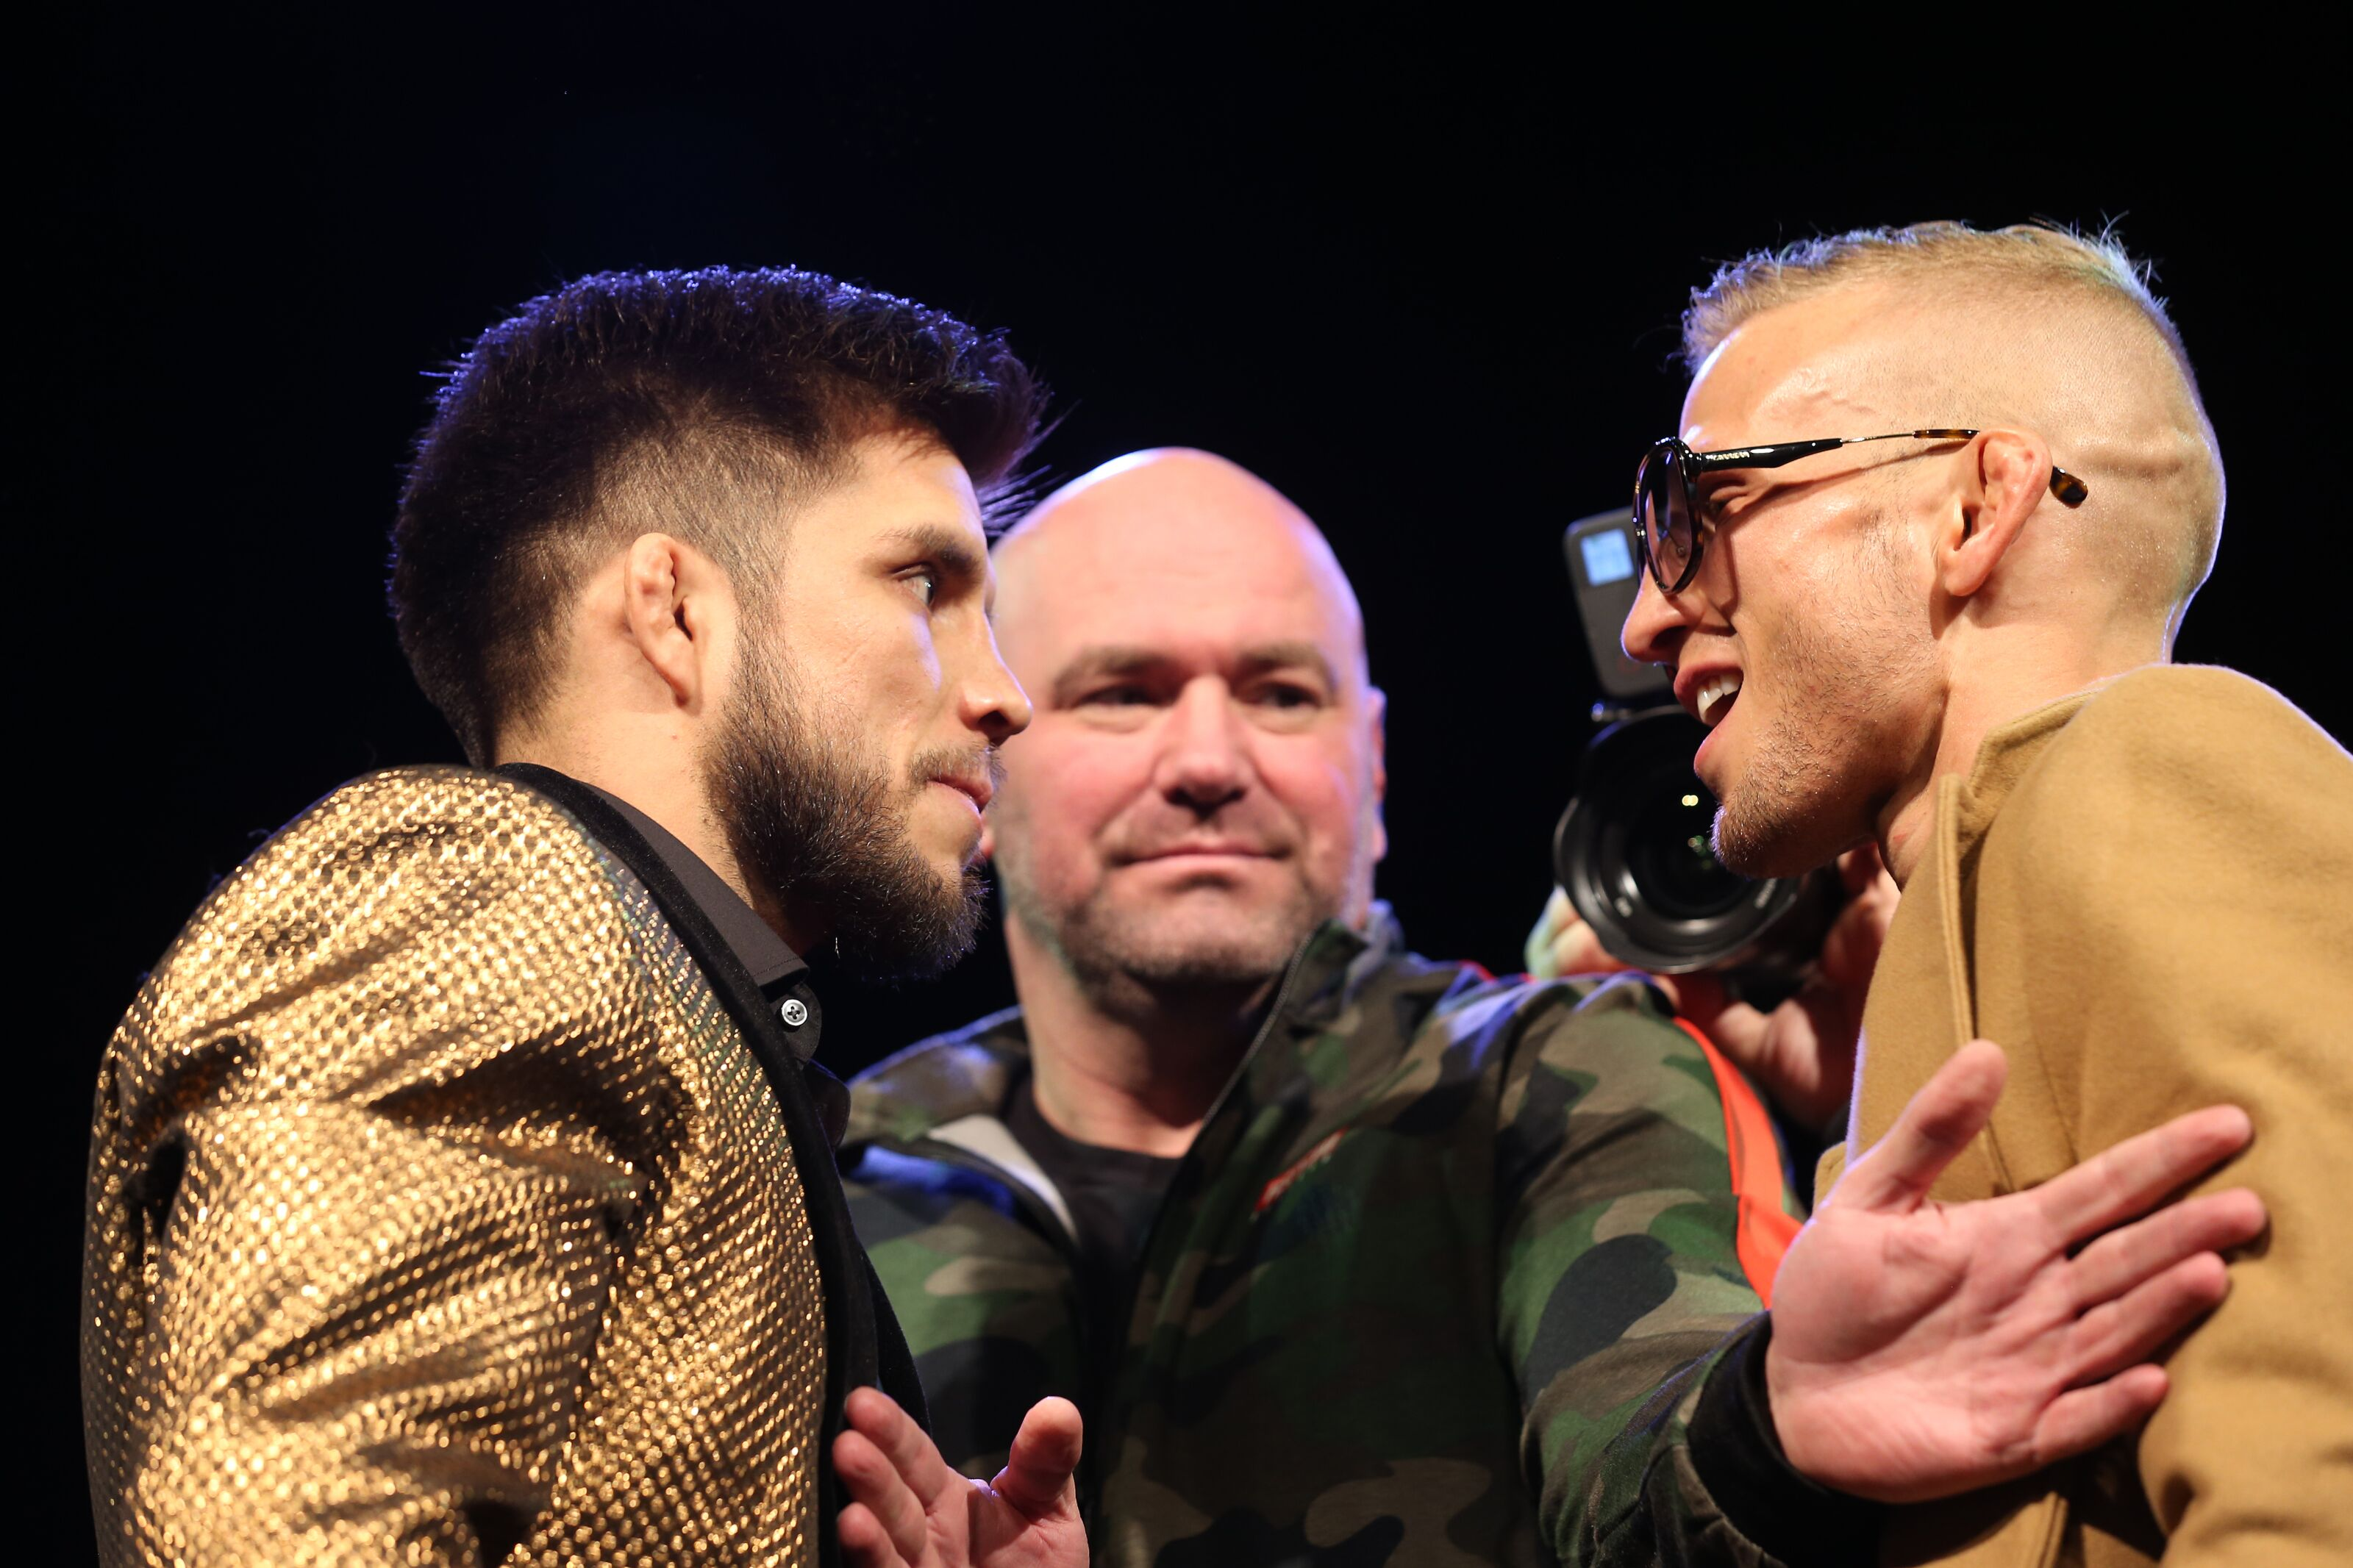 NEW YORK, NEW YORK - JANUARY 17: Henry Cejudo and TJ Dillashaw face off during the press conference ahead of UFC Fight Night Cejudo v Dillashaw at the Music Hall of Williamsburg on January 17, 2019 in the Brooklyn borough of New York City. (Photo by Michael Owens/Zuffa LLC/Zuffa LLC)